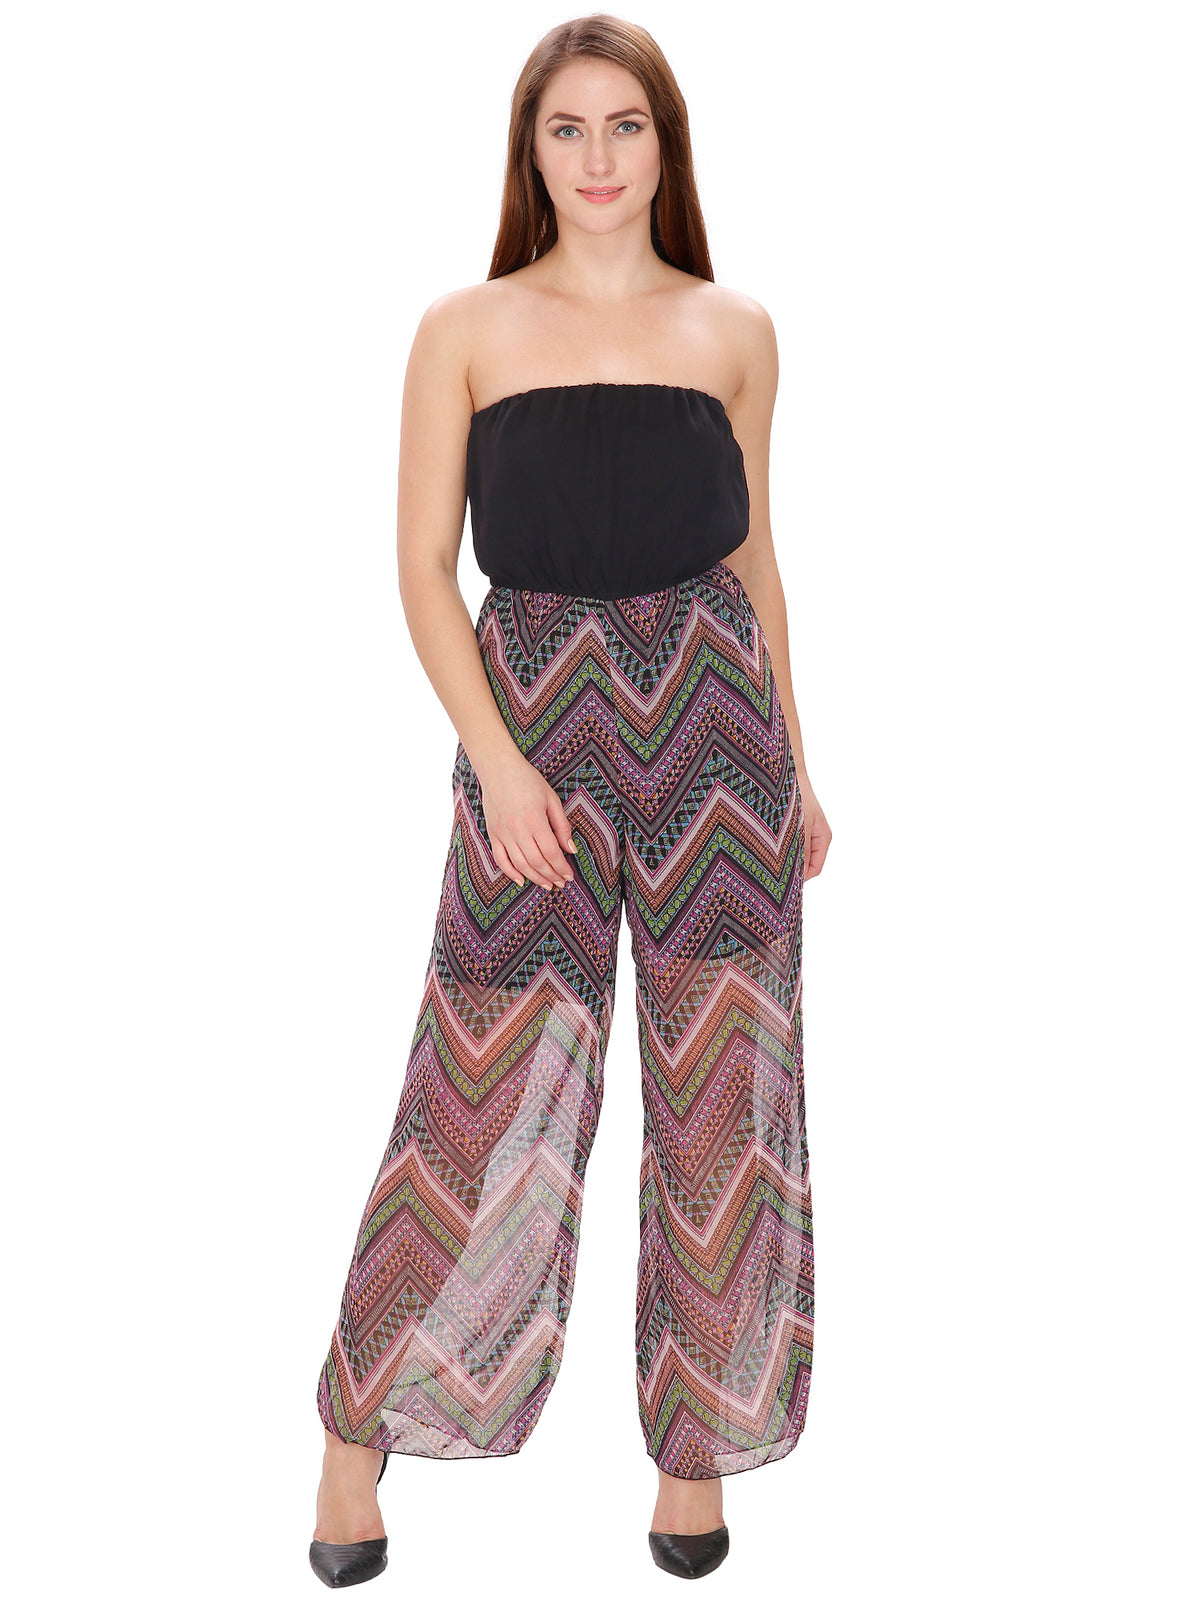 Multicoloured Palazzo Jumpsuit with a hint of pink